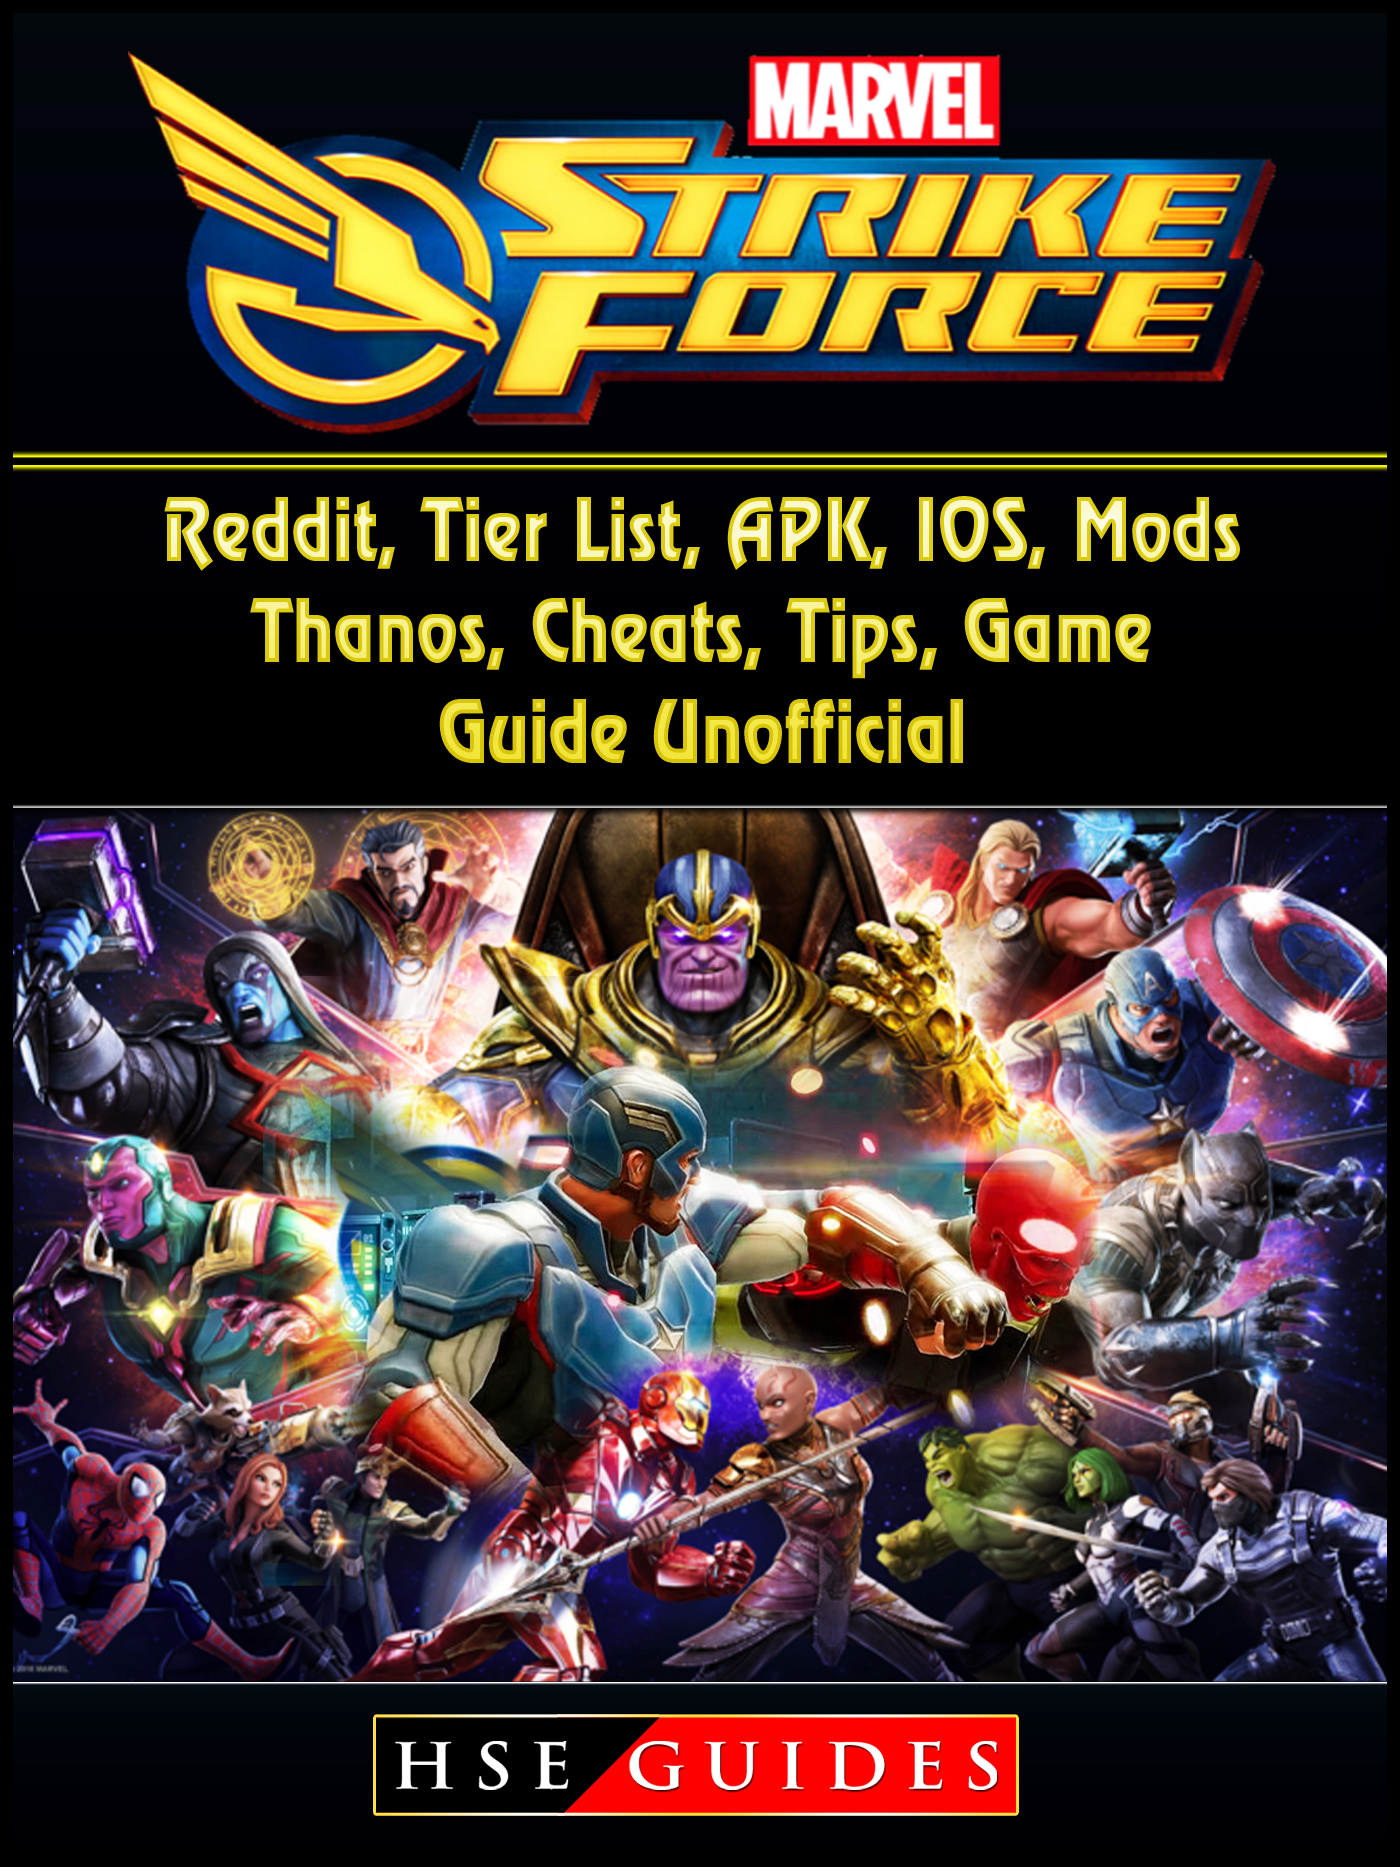 Marvel Strike Force, Reddit, Tier List, APK, IOS, Mods, Thanos, Cheats, Tips, Game Guide Unofficial By HSE Guides